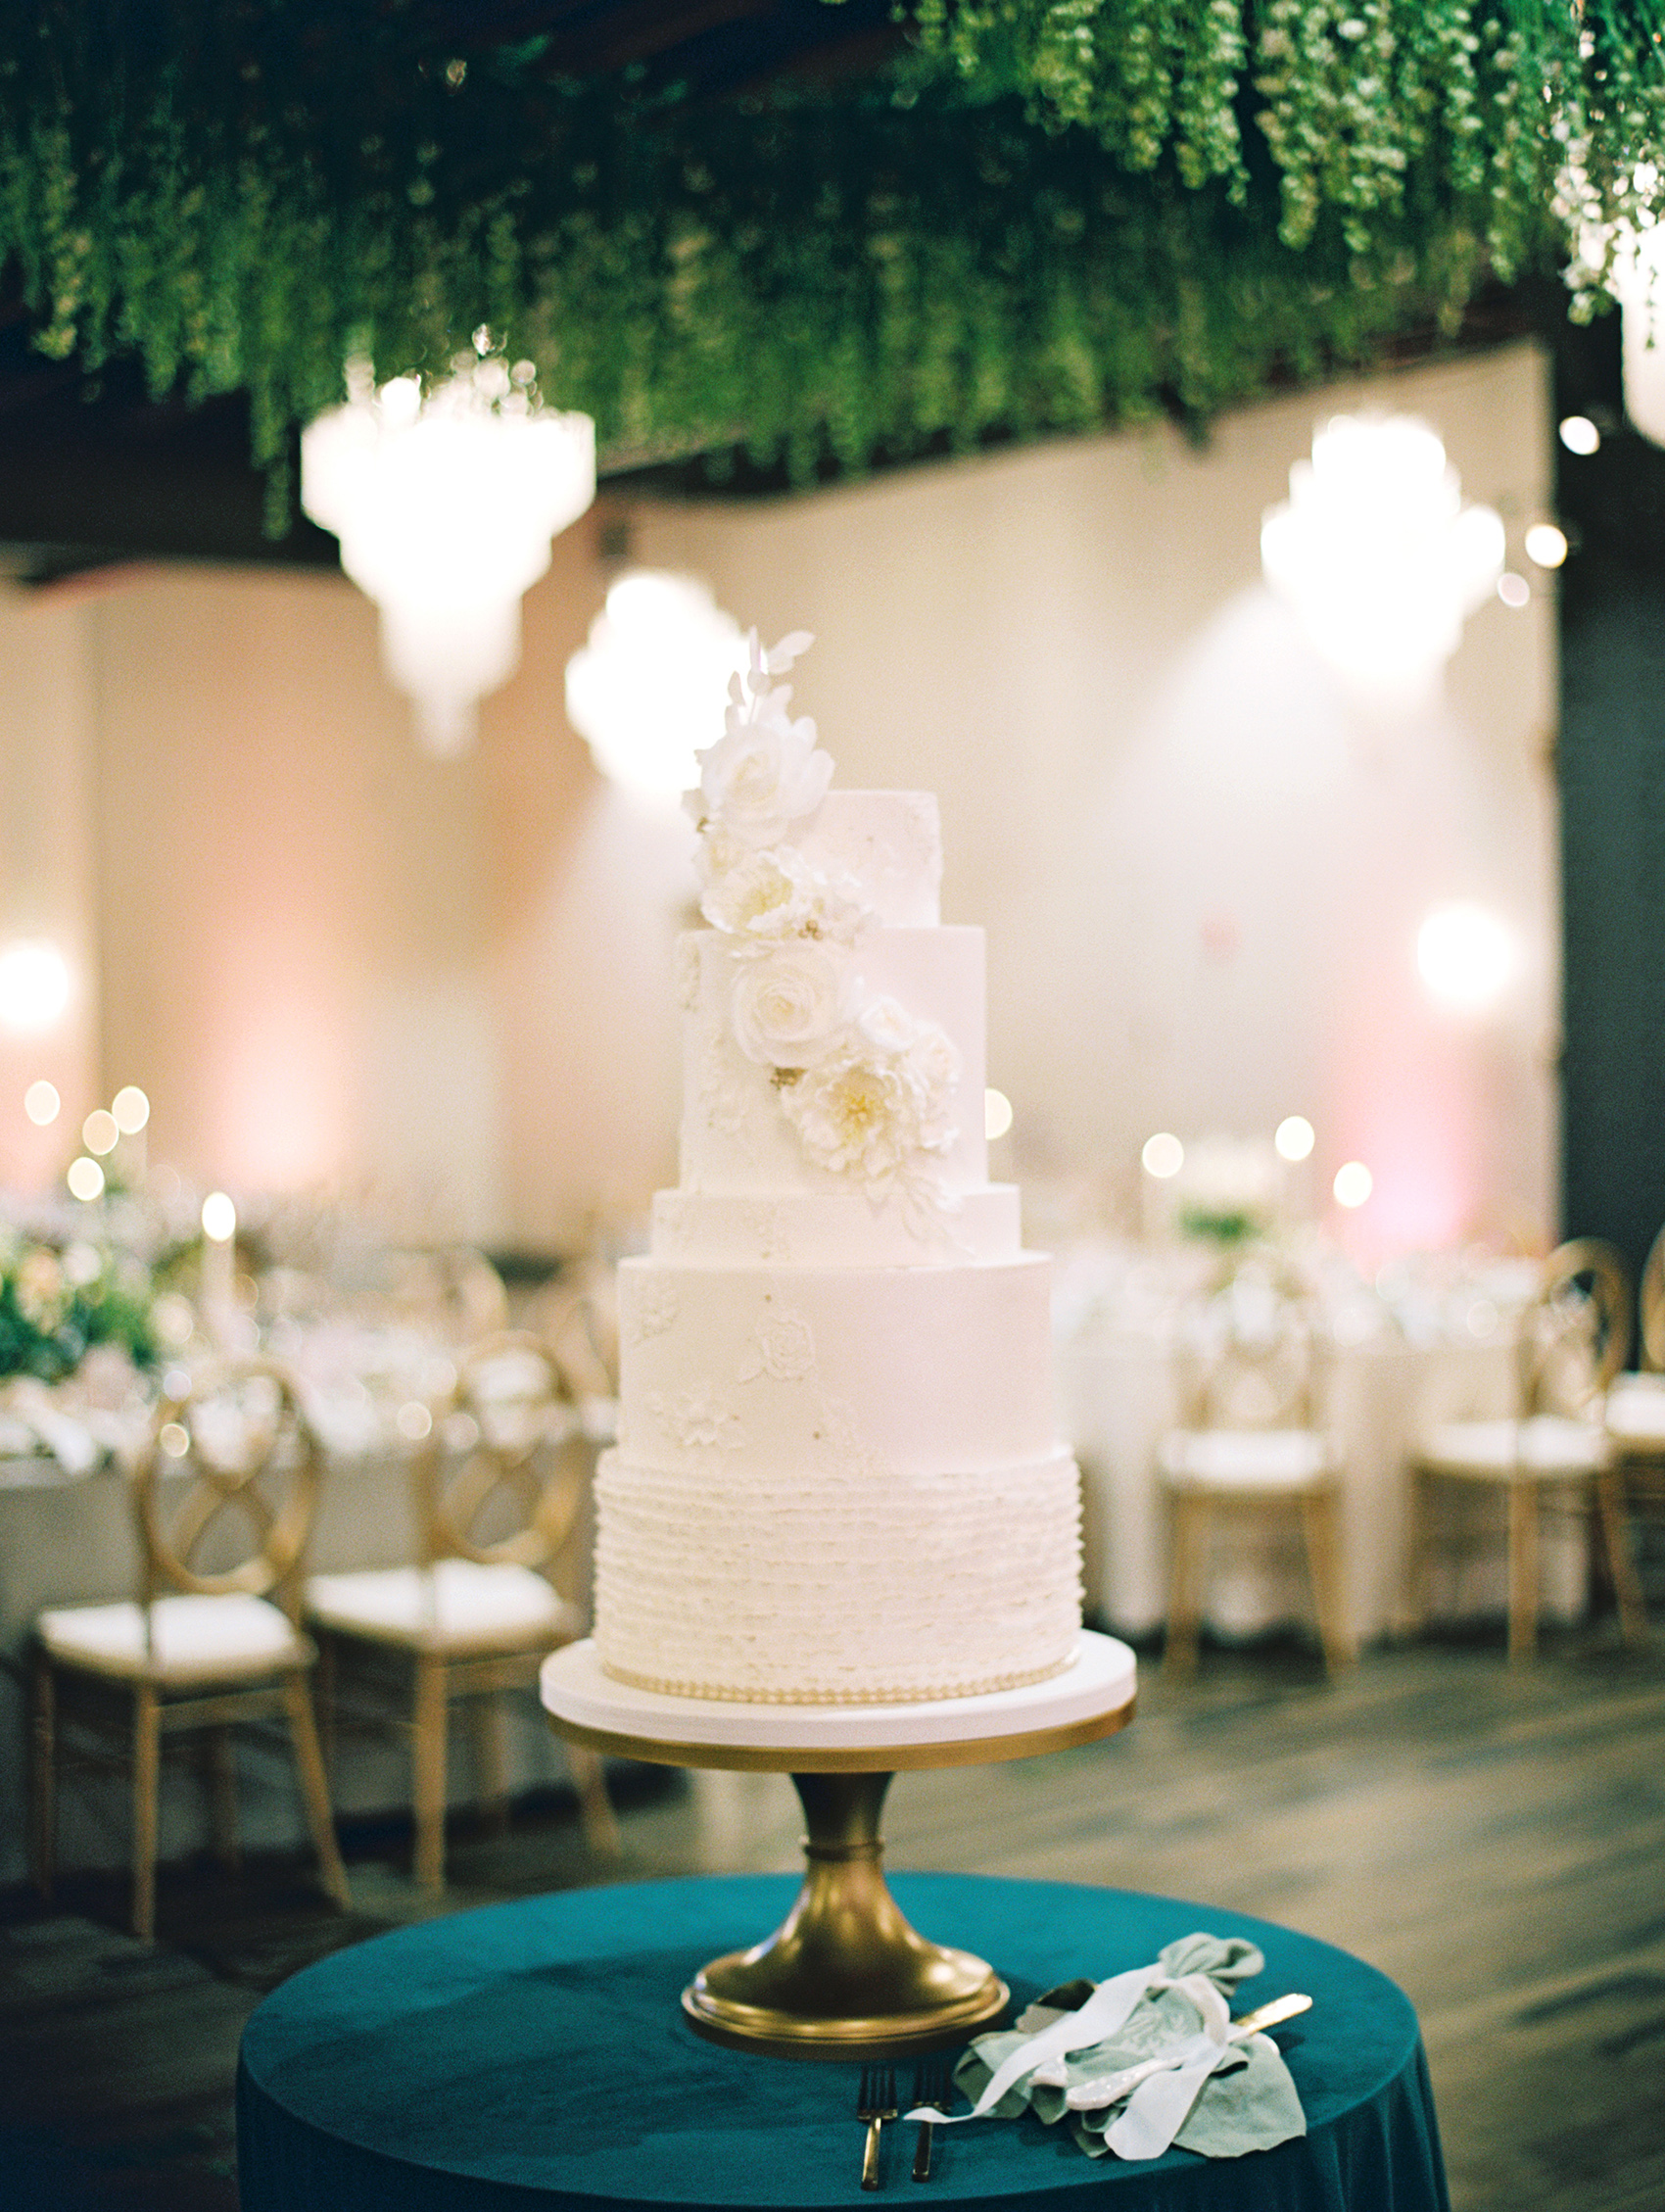 micro tier wedding cakes all white on table with deep teal cloth